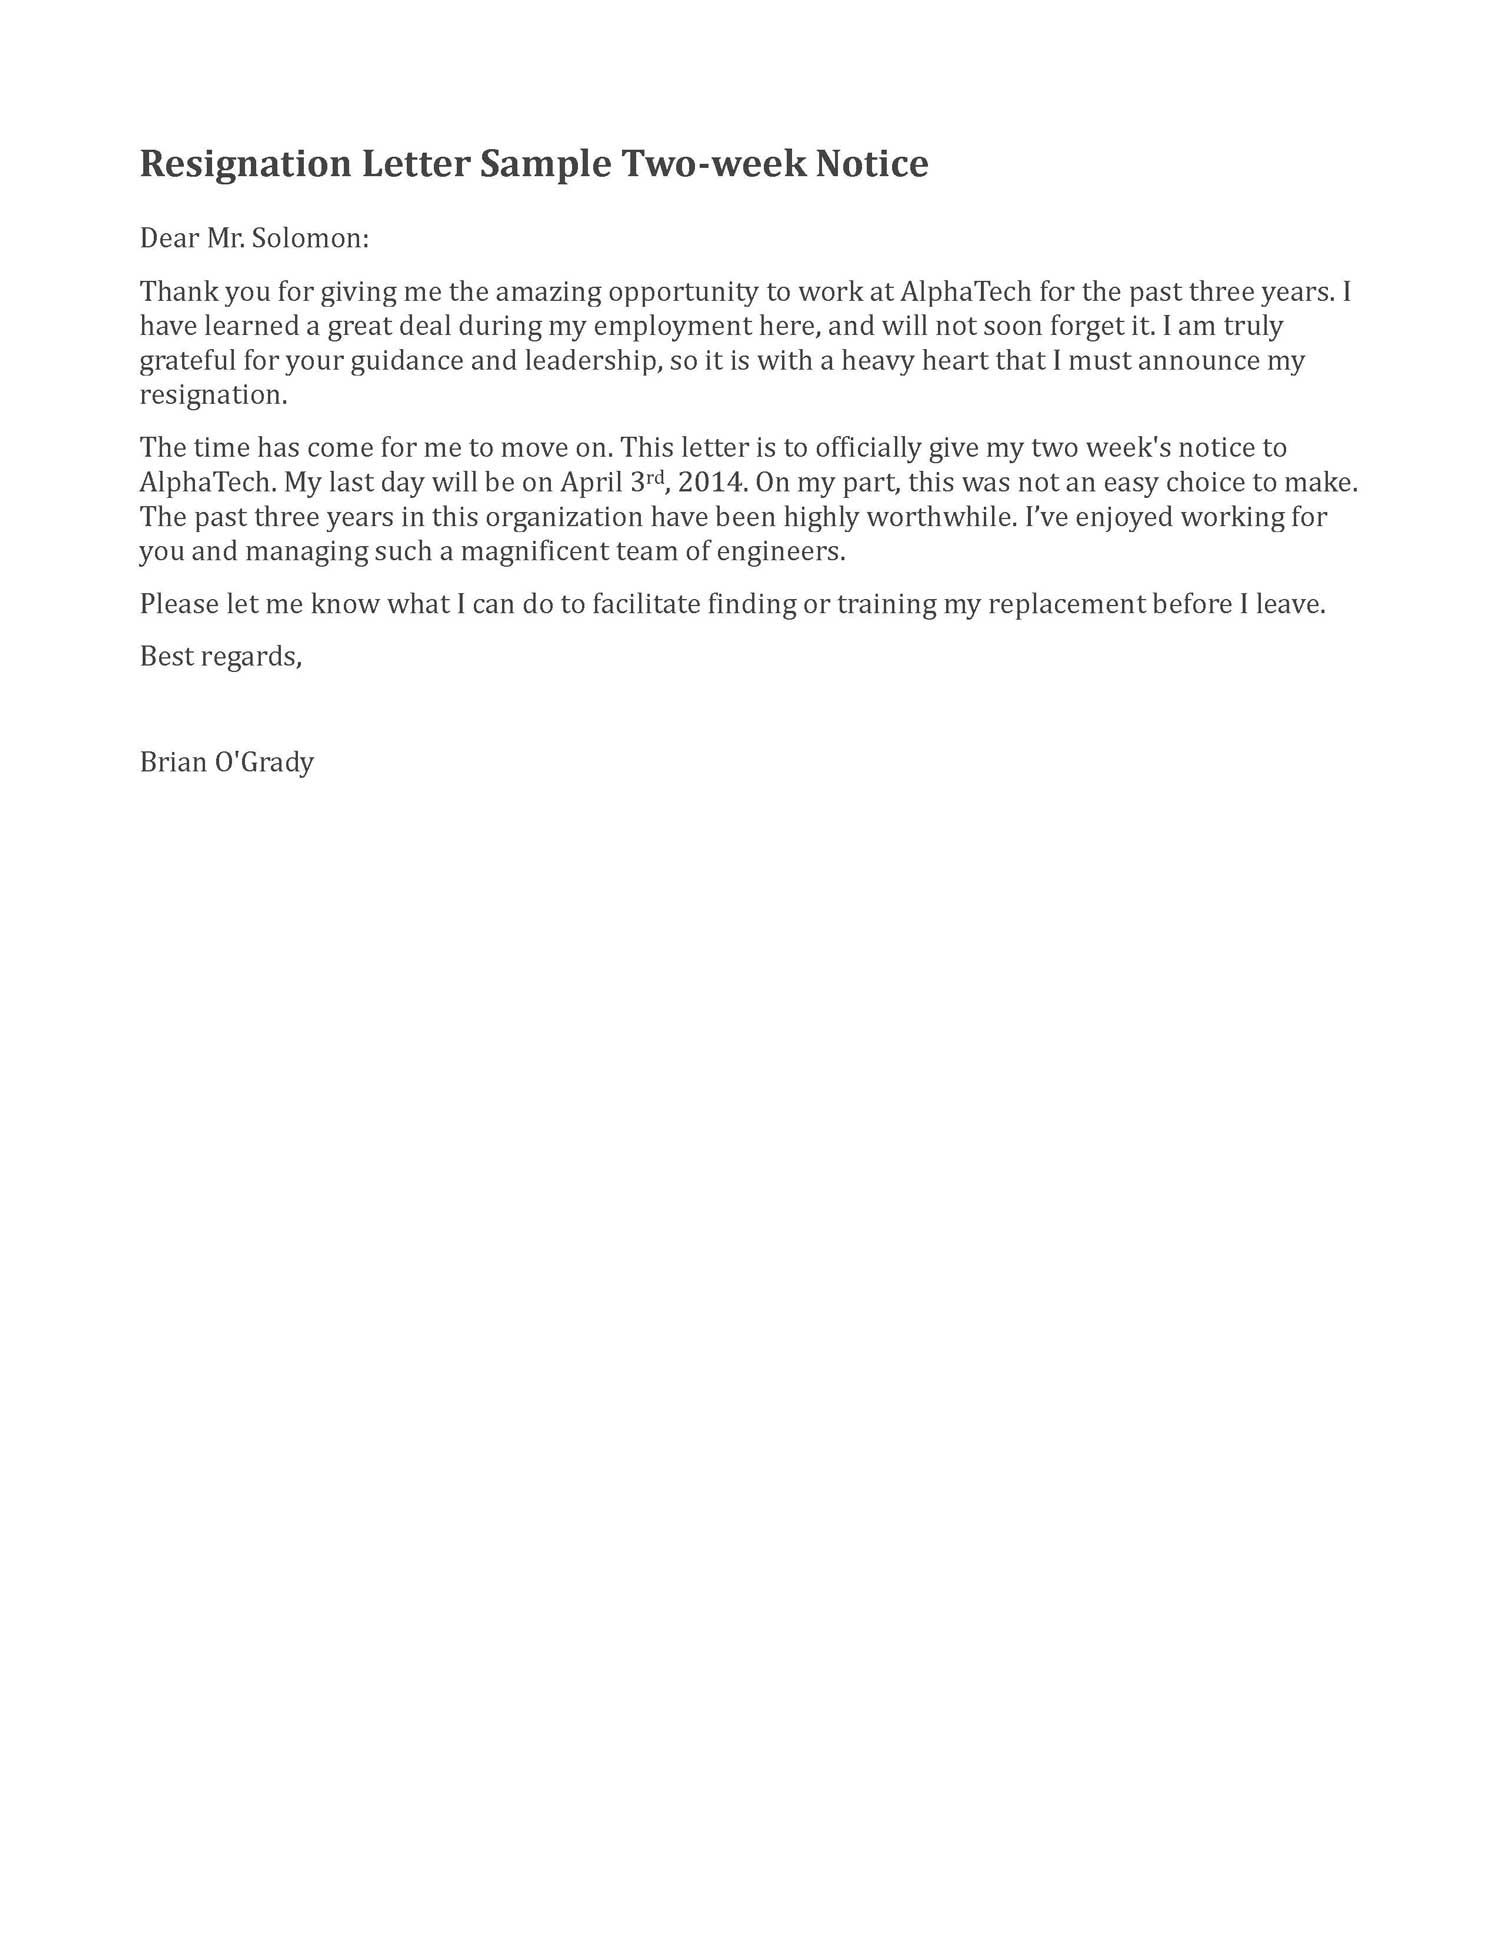 Resignation Format Resignation Letter Sample 2 Weeks Notice  Google Search